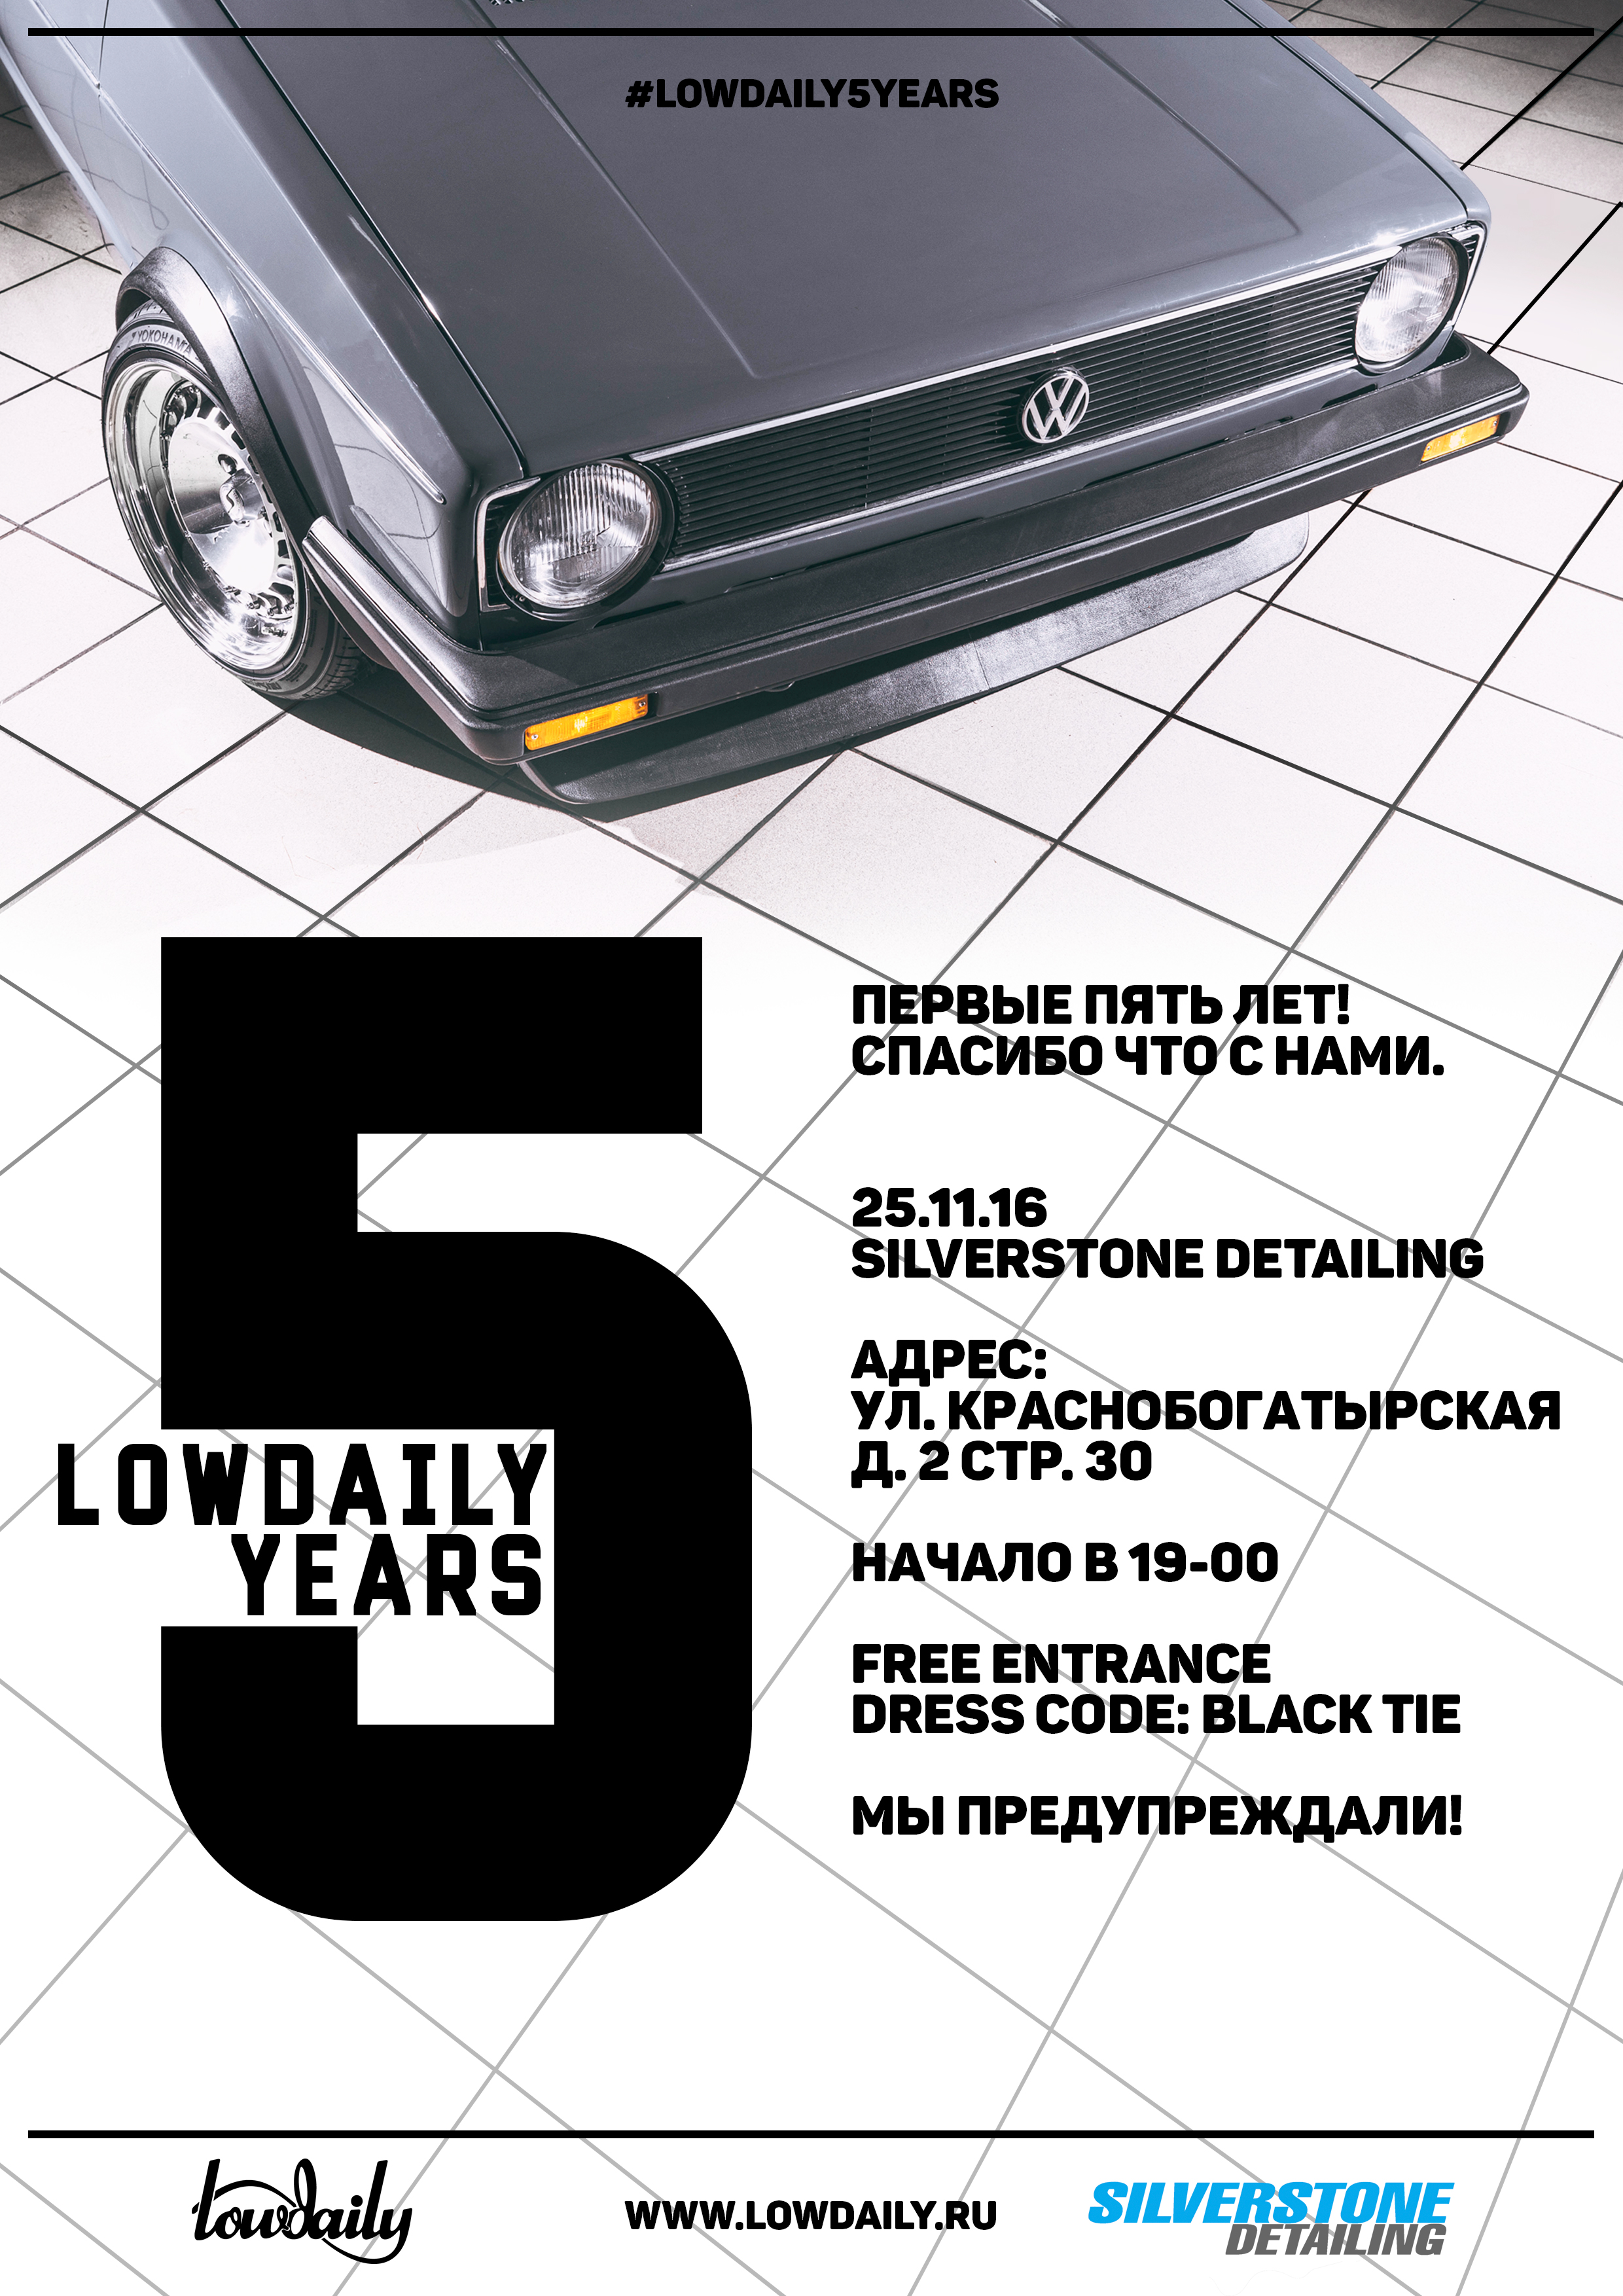 lowdaily5years